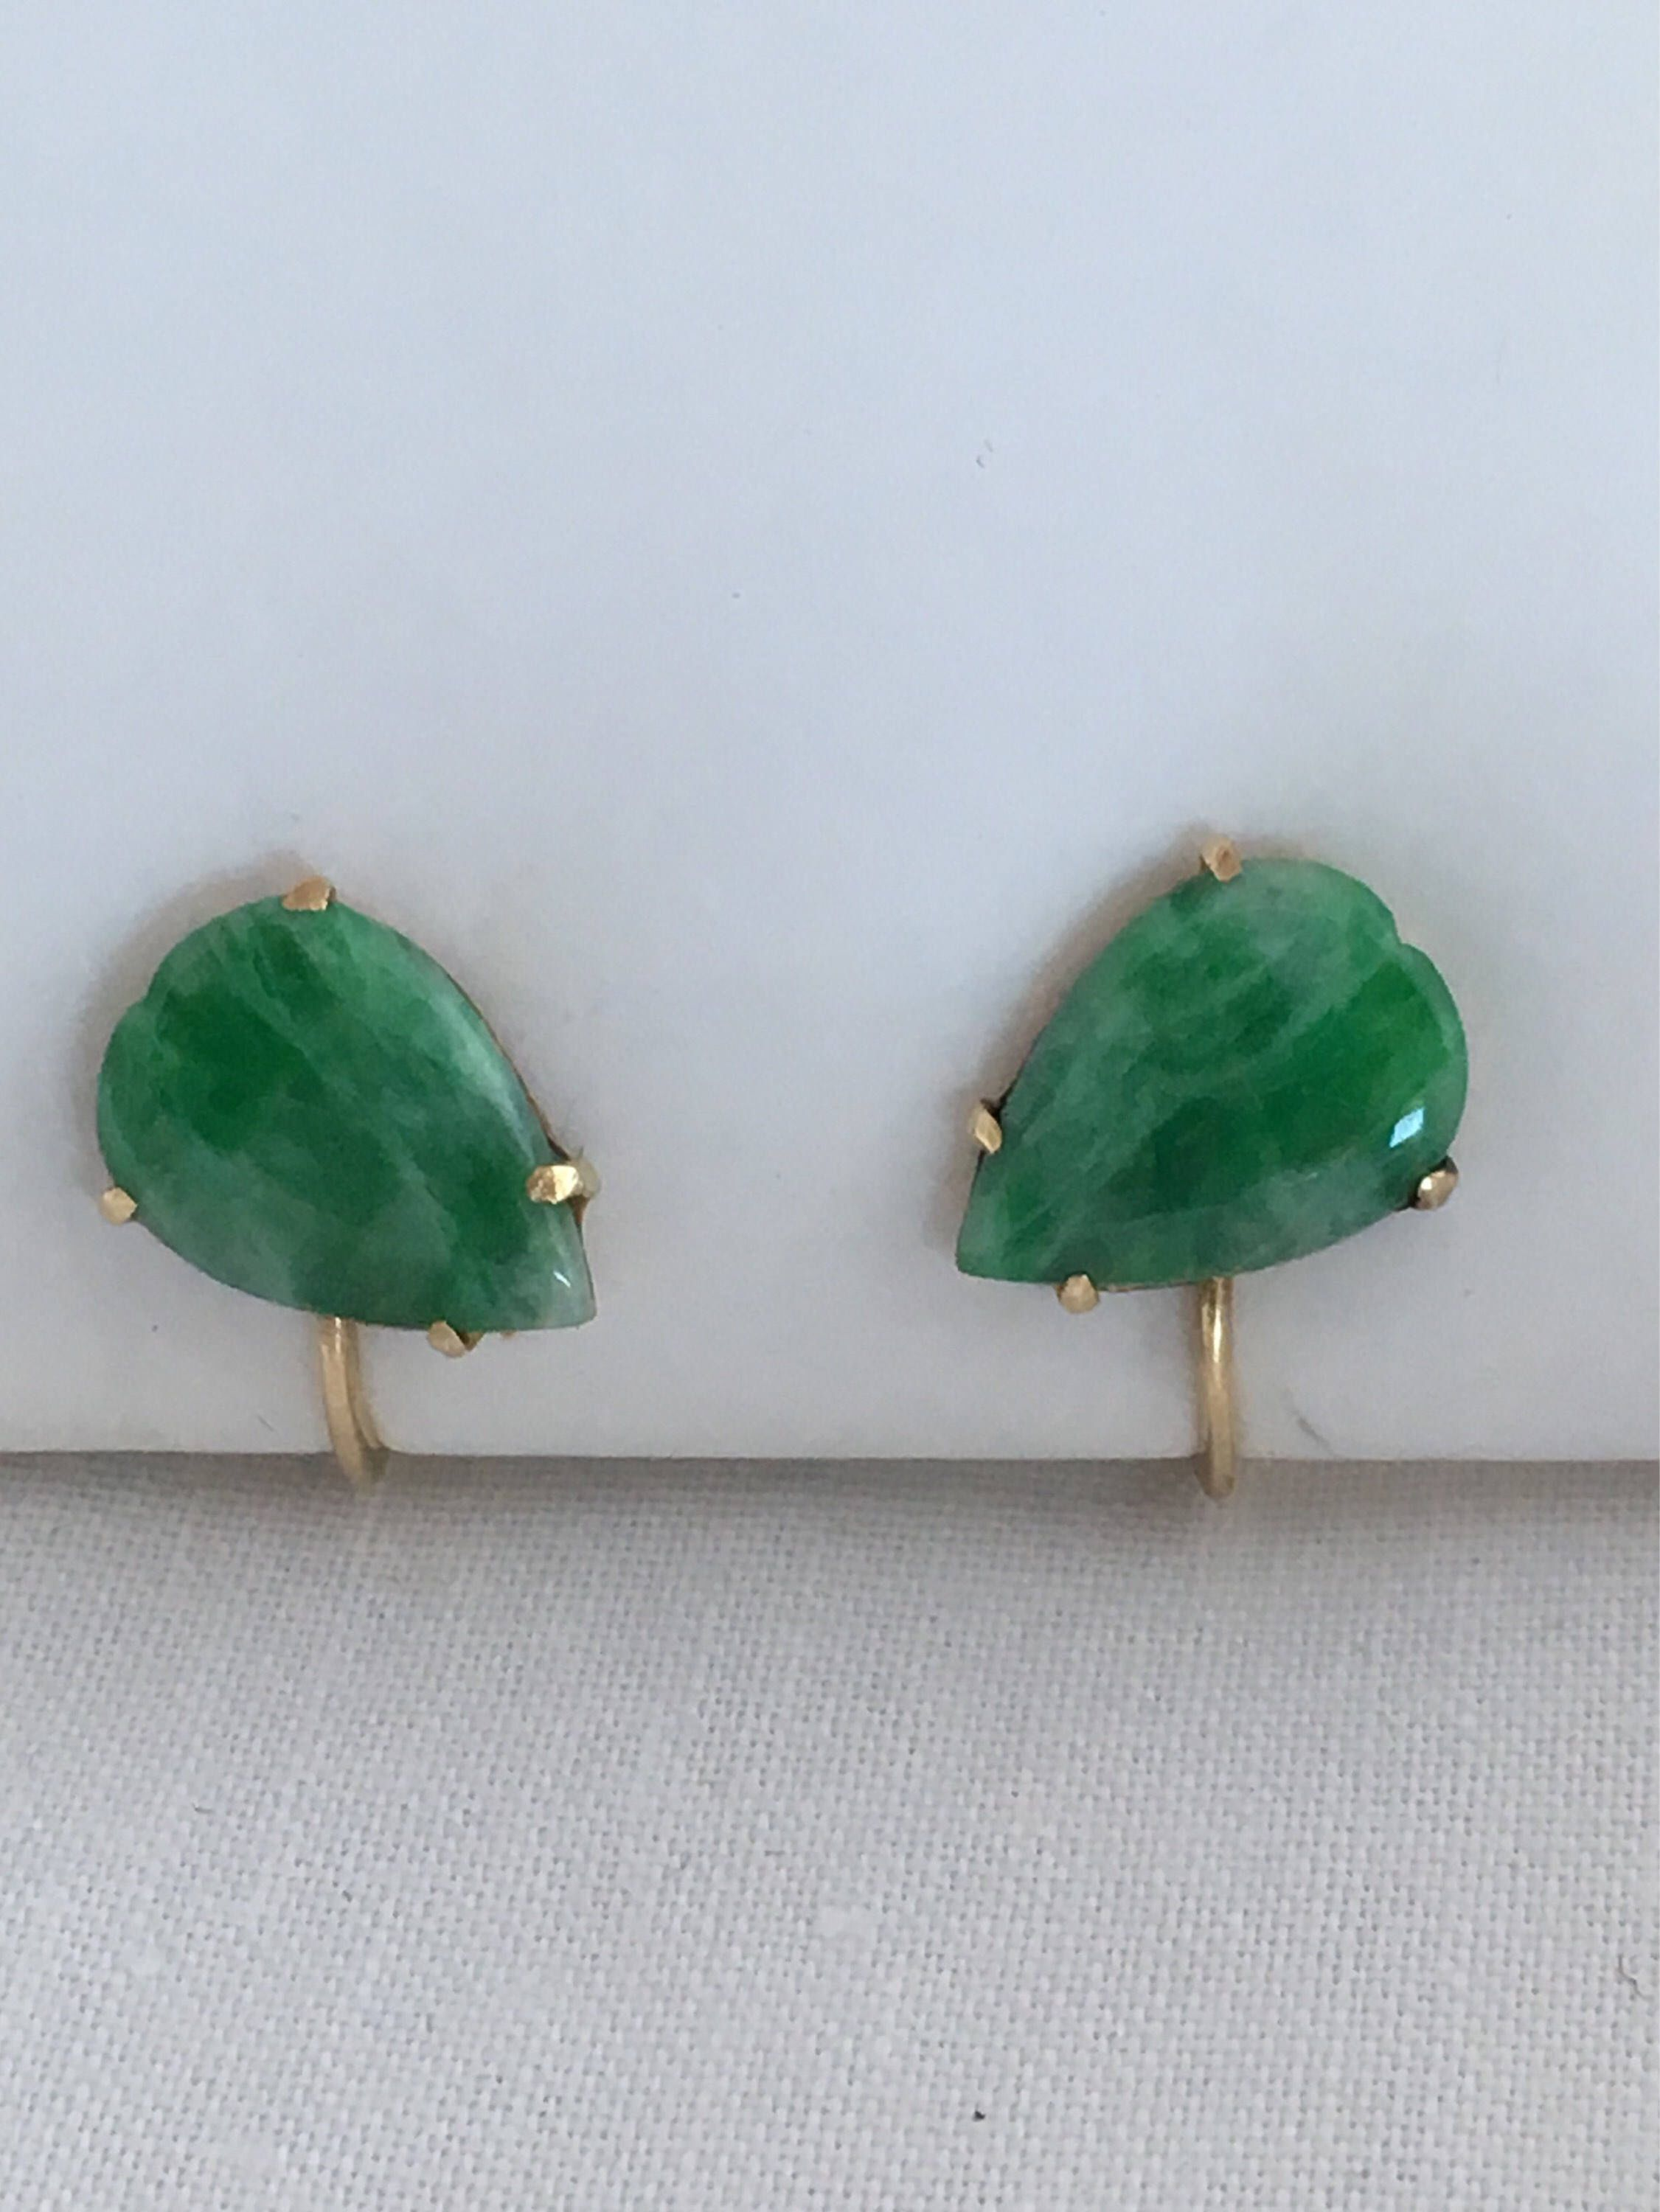 89dd02ccc Excited to share the latest addition to my #etsy shop: 14K Gold Jadeite  translucent Apple Green #jadegemstone